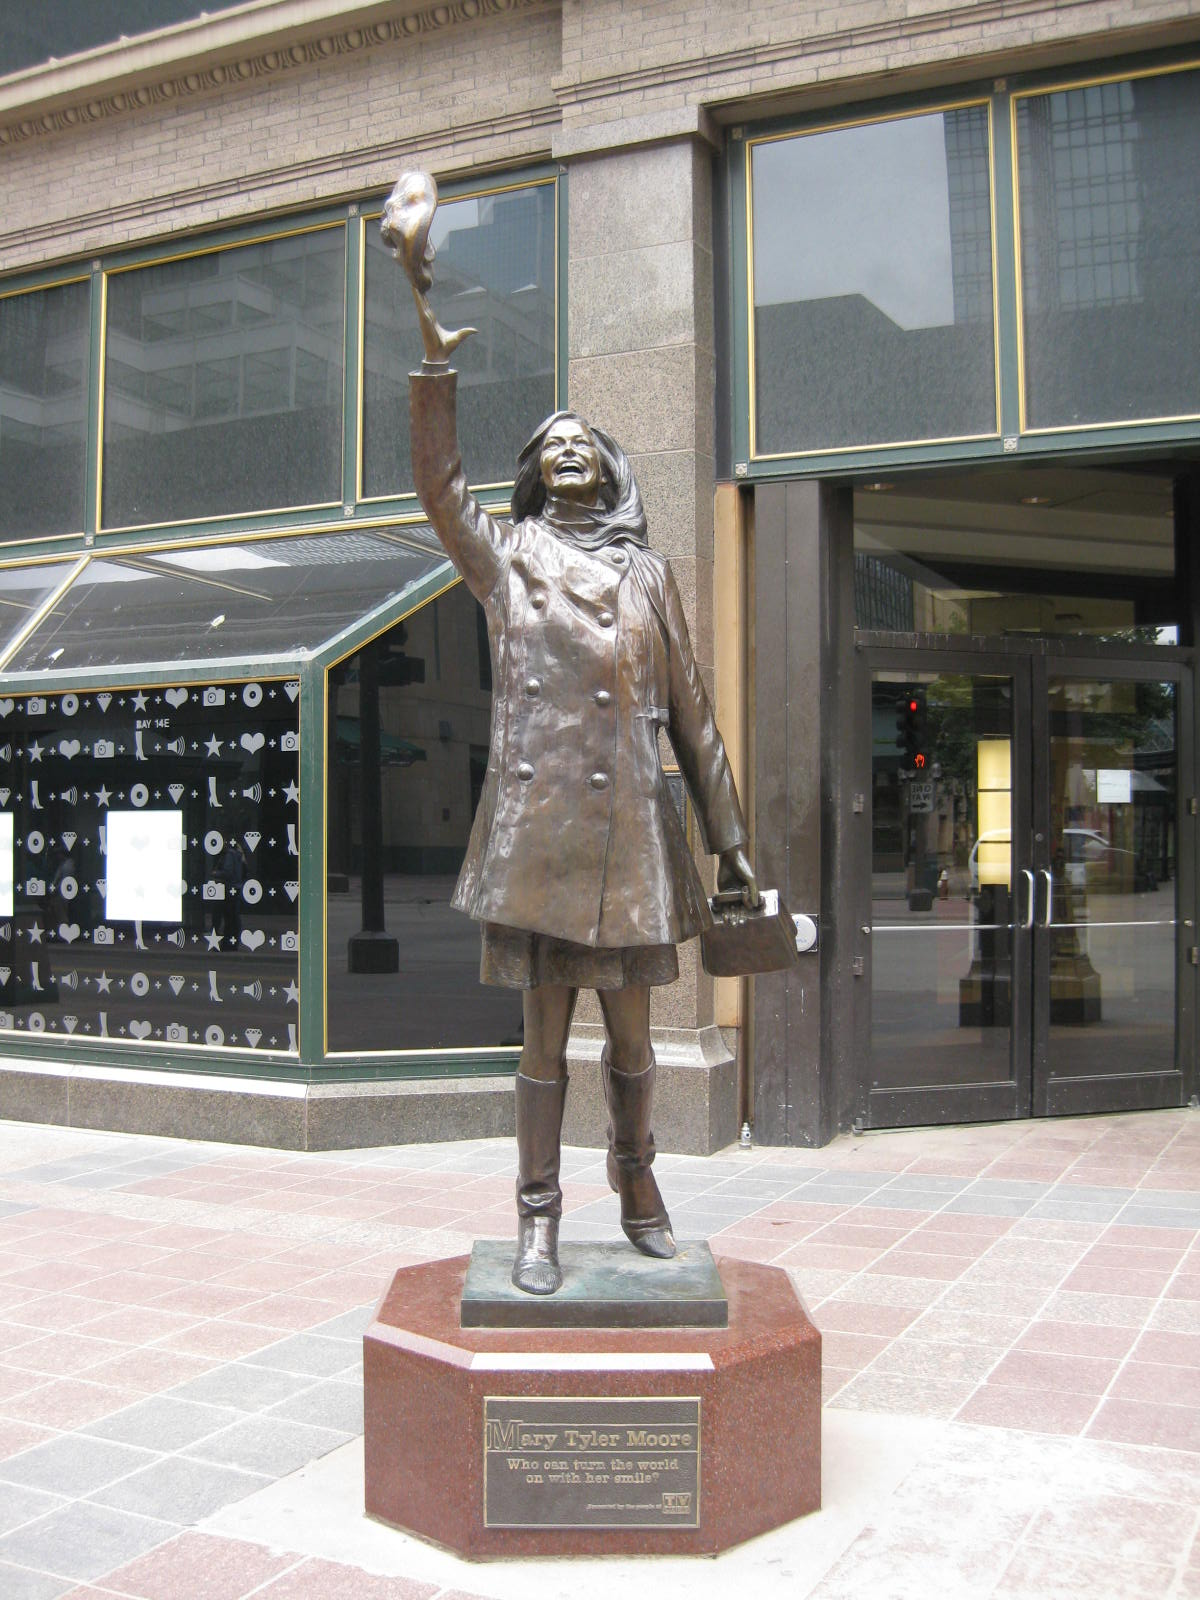 Mary Tyler Moore in Minneapolis.